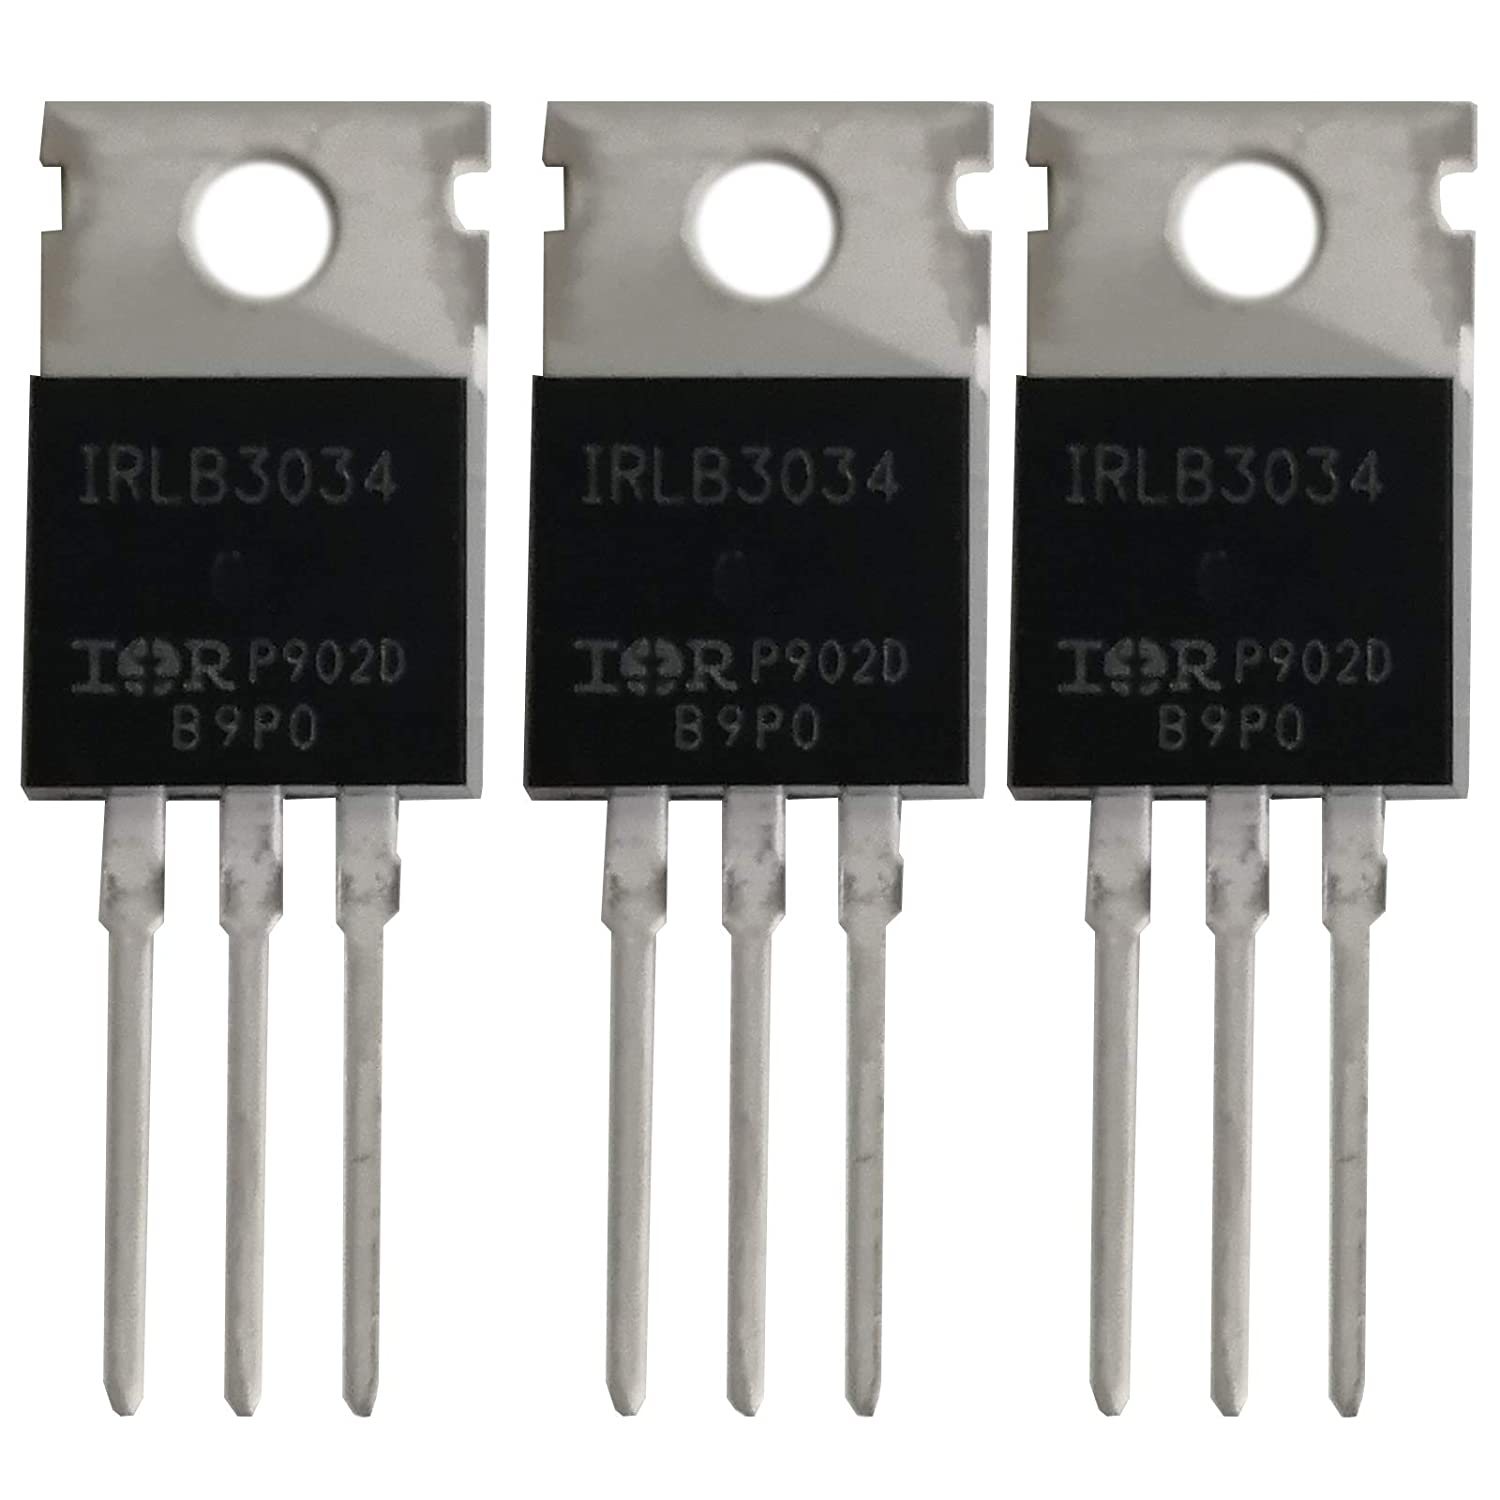 Anfukone IRLB3034 IRLB3034PBF MOSFET Max 80% OFF Transistor N Choice 195 Channel A